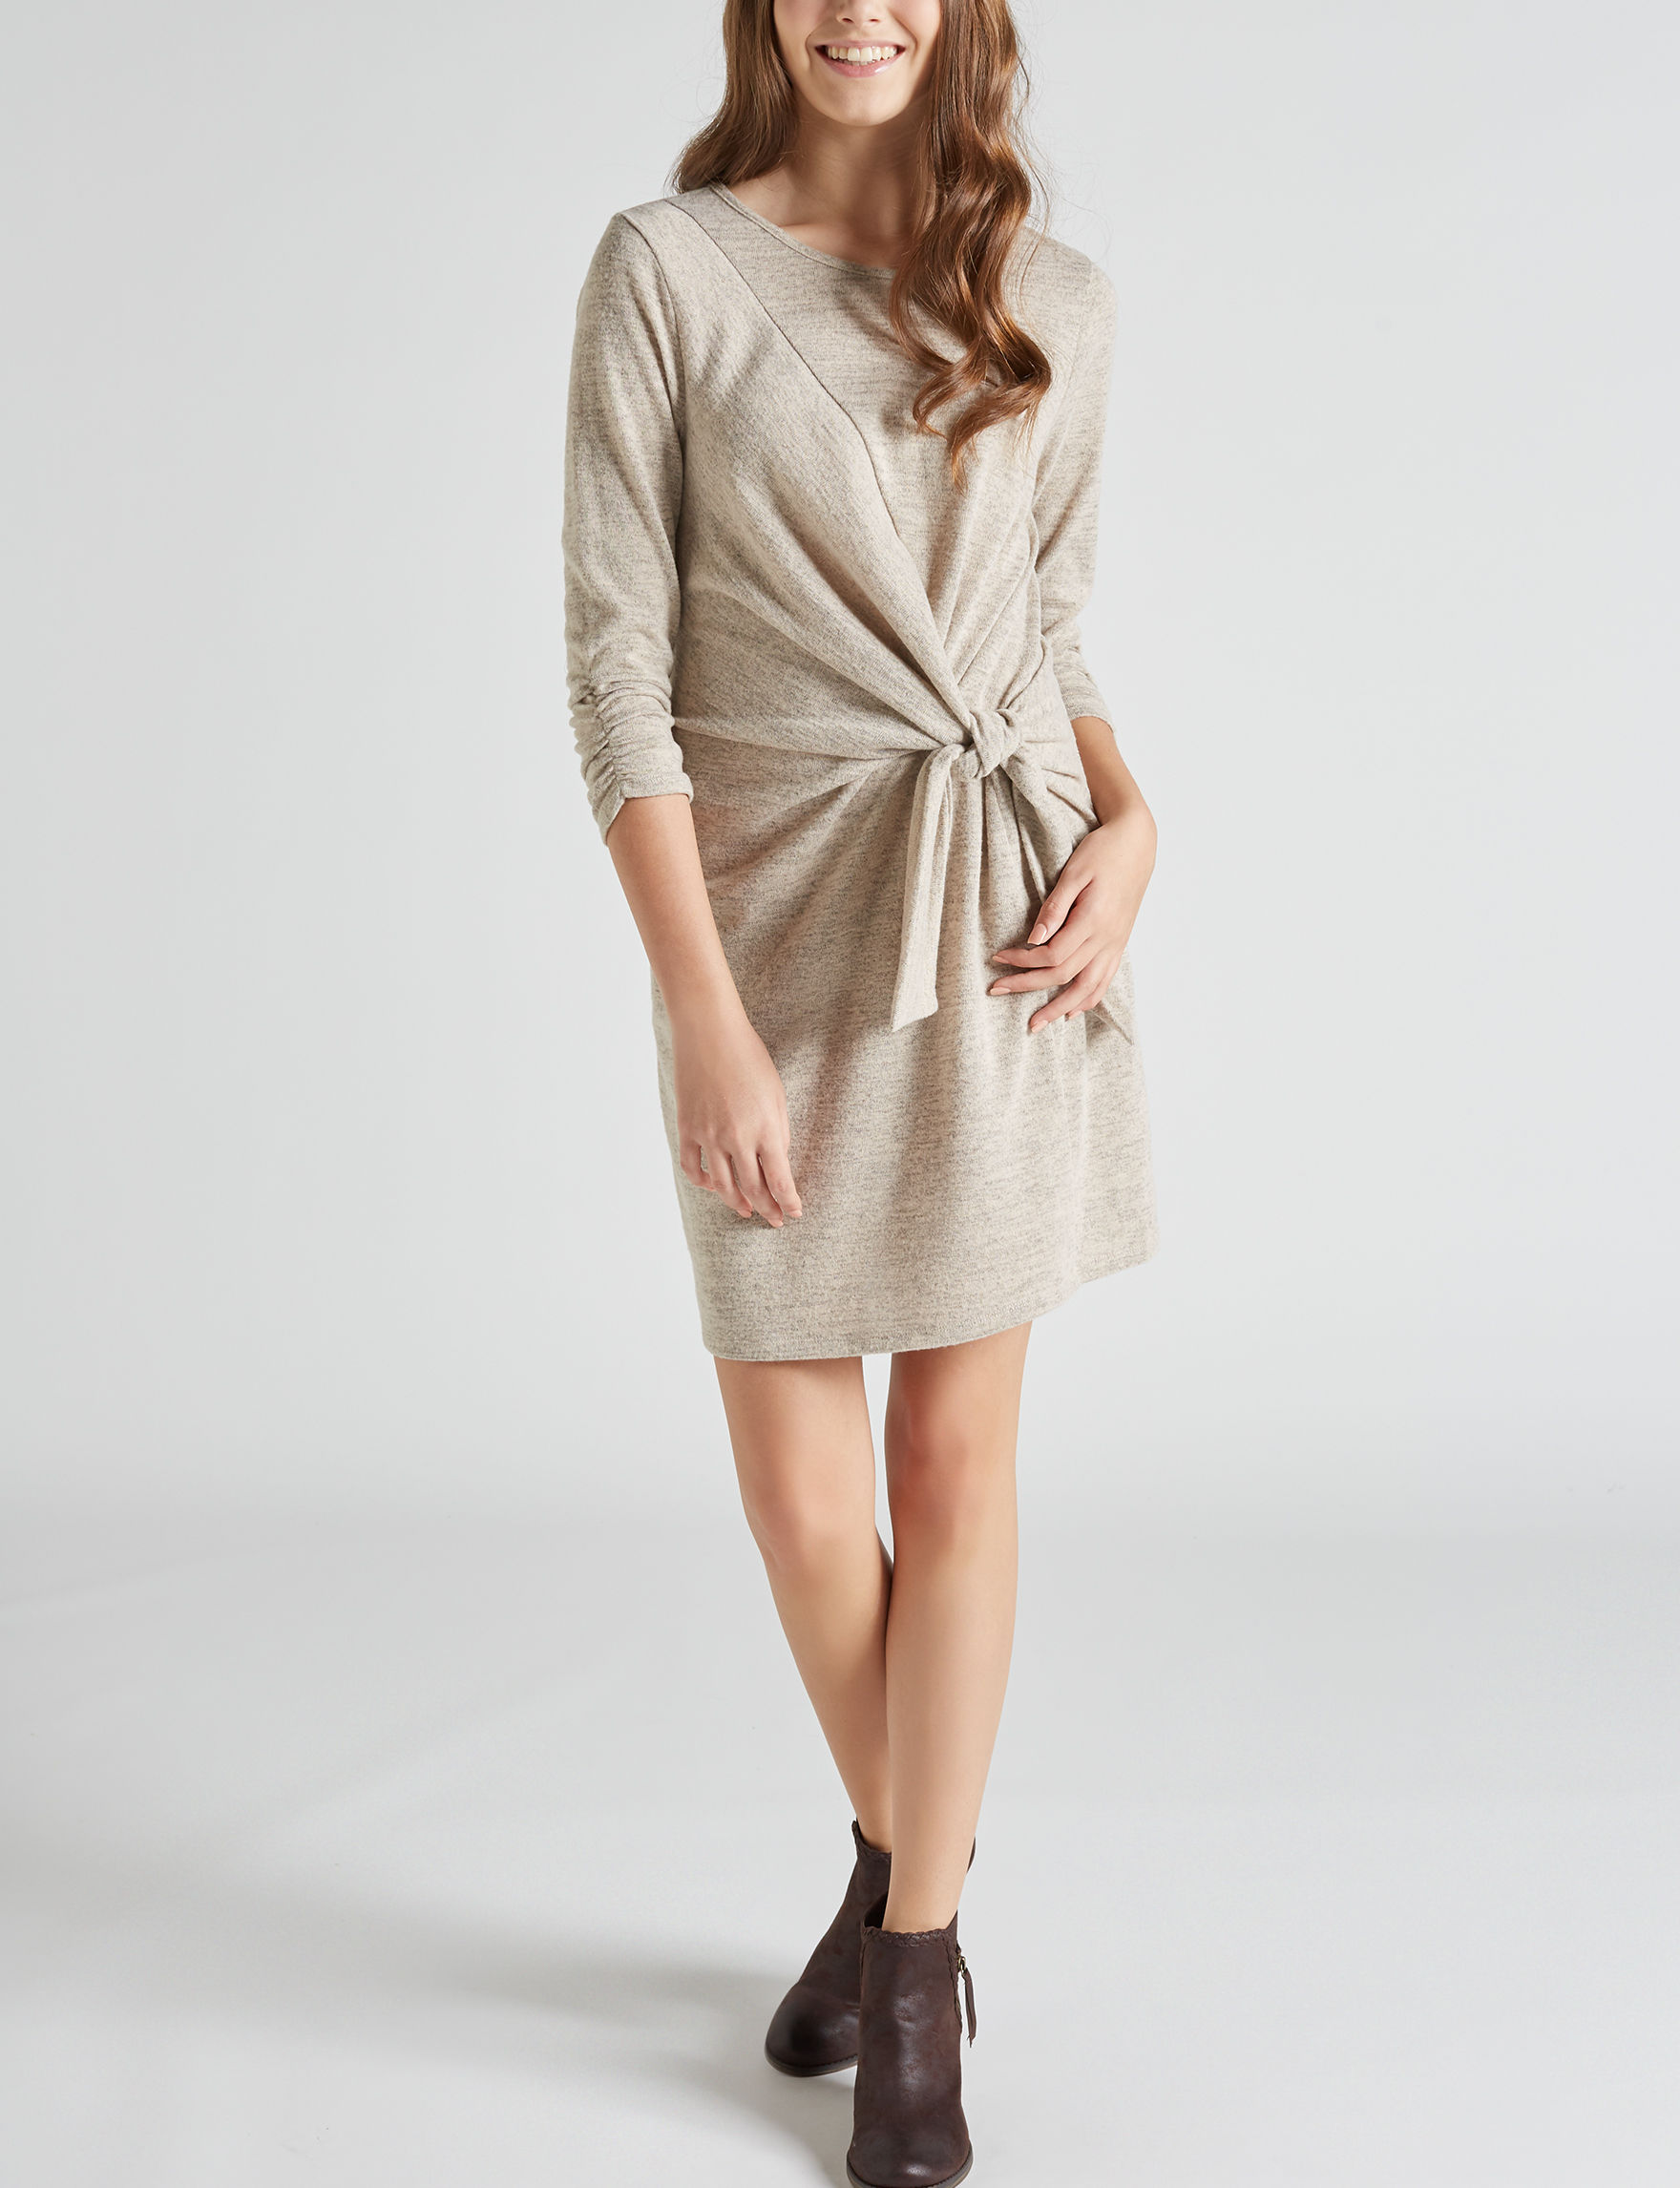 Bailey Blue Tan Everyday & Casual Sweater Dresses